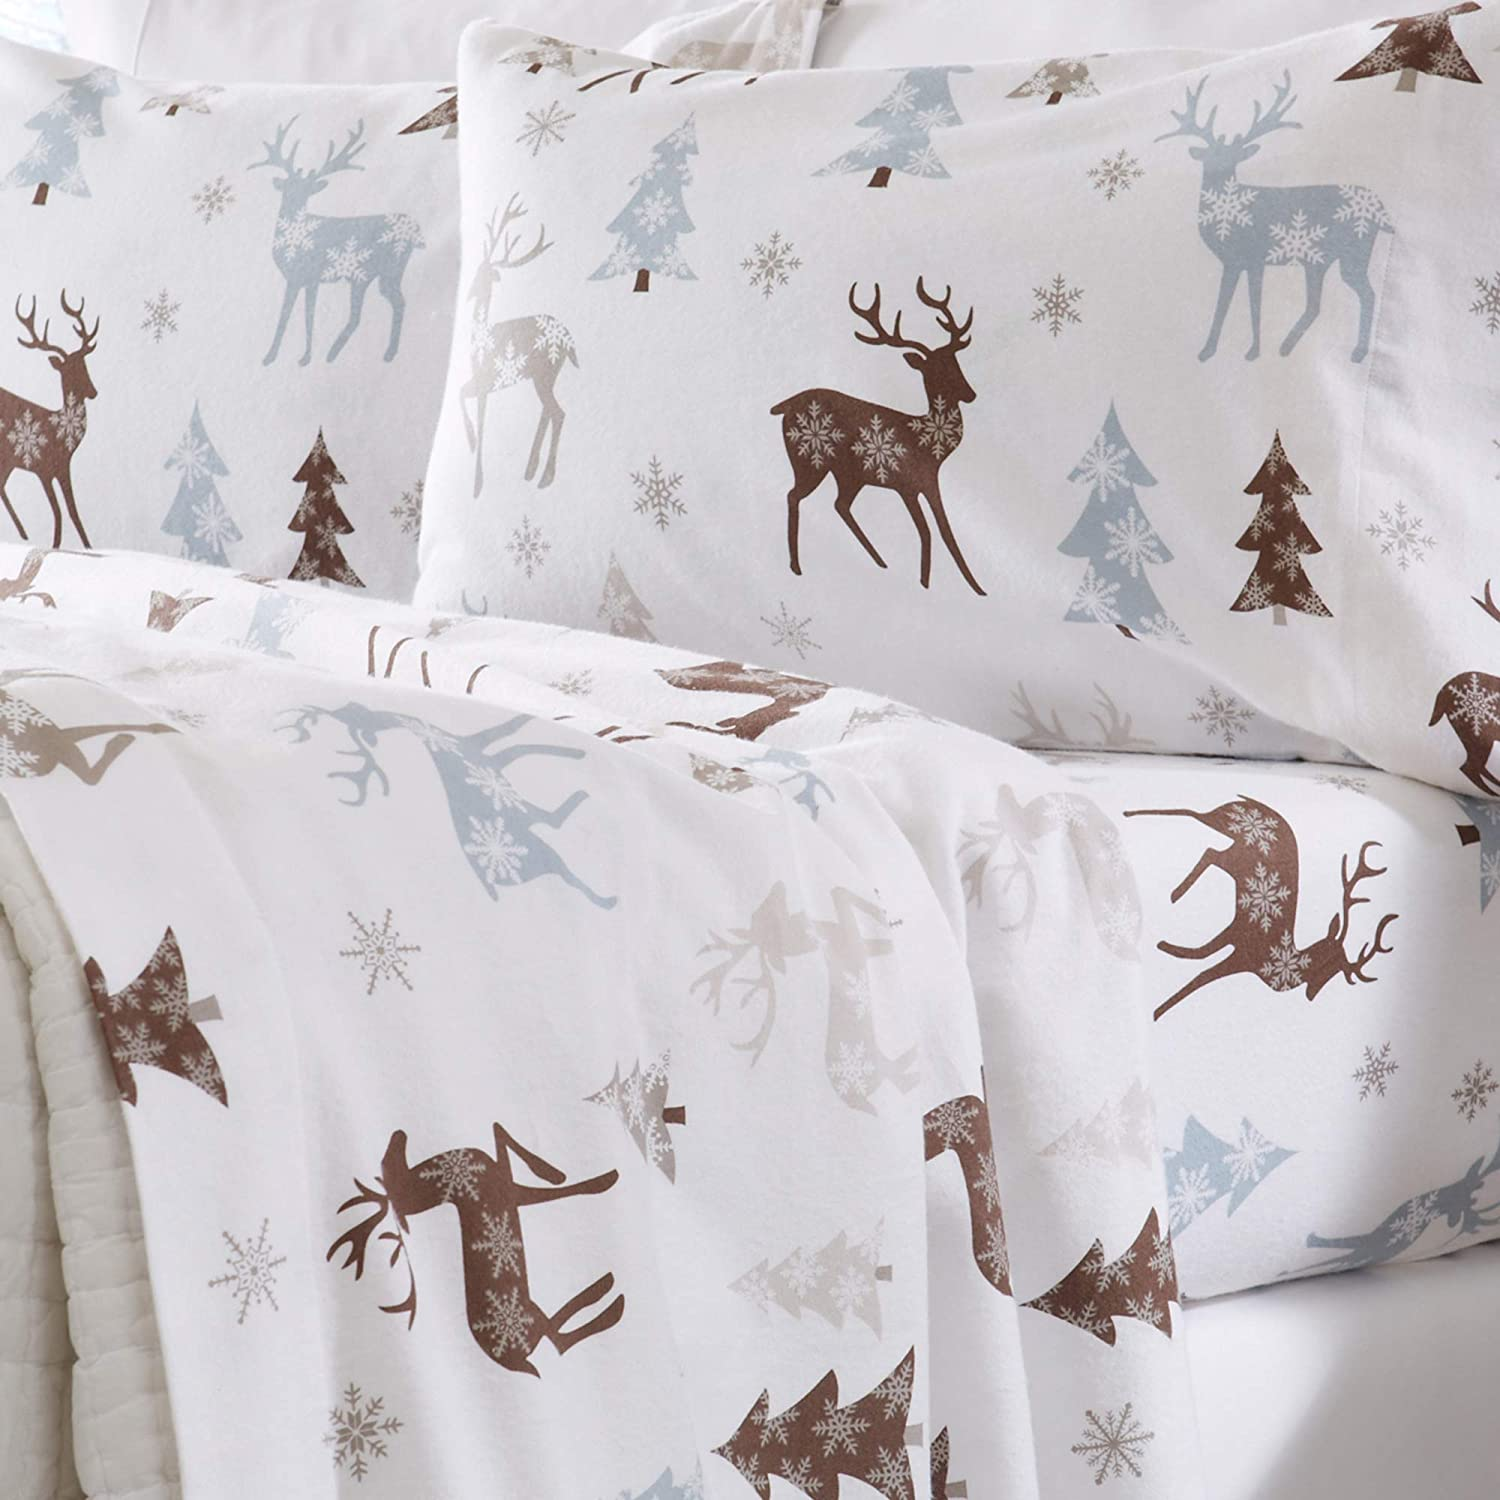 Home Fashion Designs Flannel Sheets Queen Winter Bed Sheets Flannel Sheet Set Snowy Reindeer Flannel Sheets 100% Turkish Cotton Flannel Sheet Set. Stratton Collection (Queen, Snowy Reindeer)